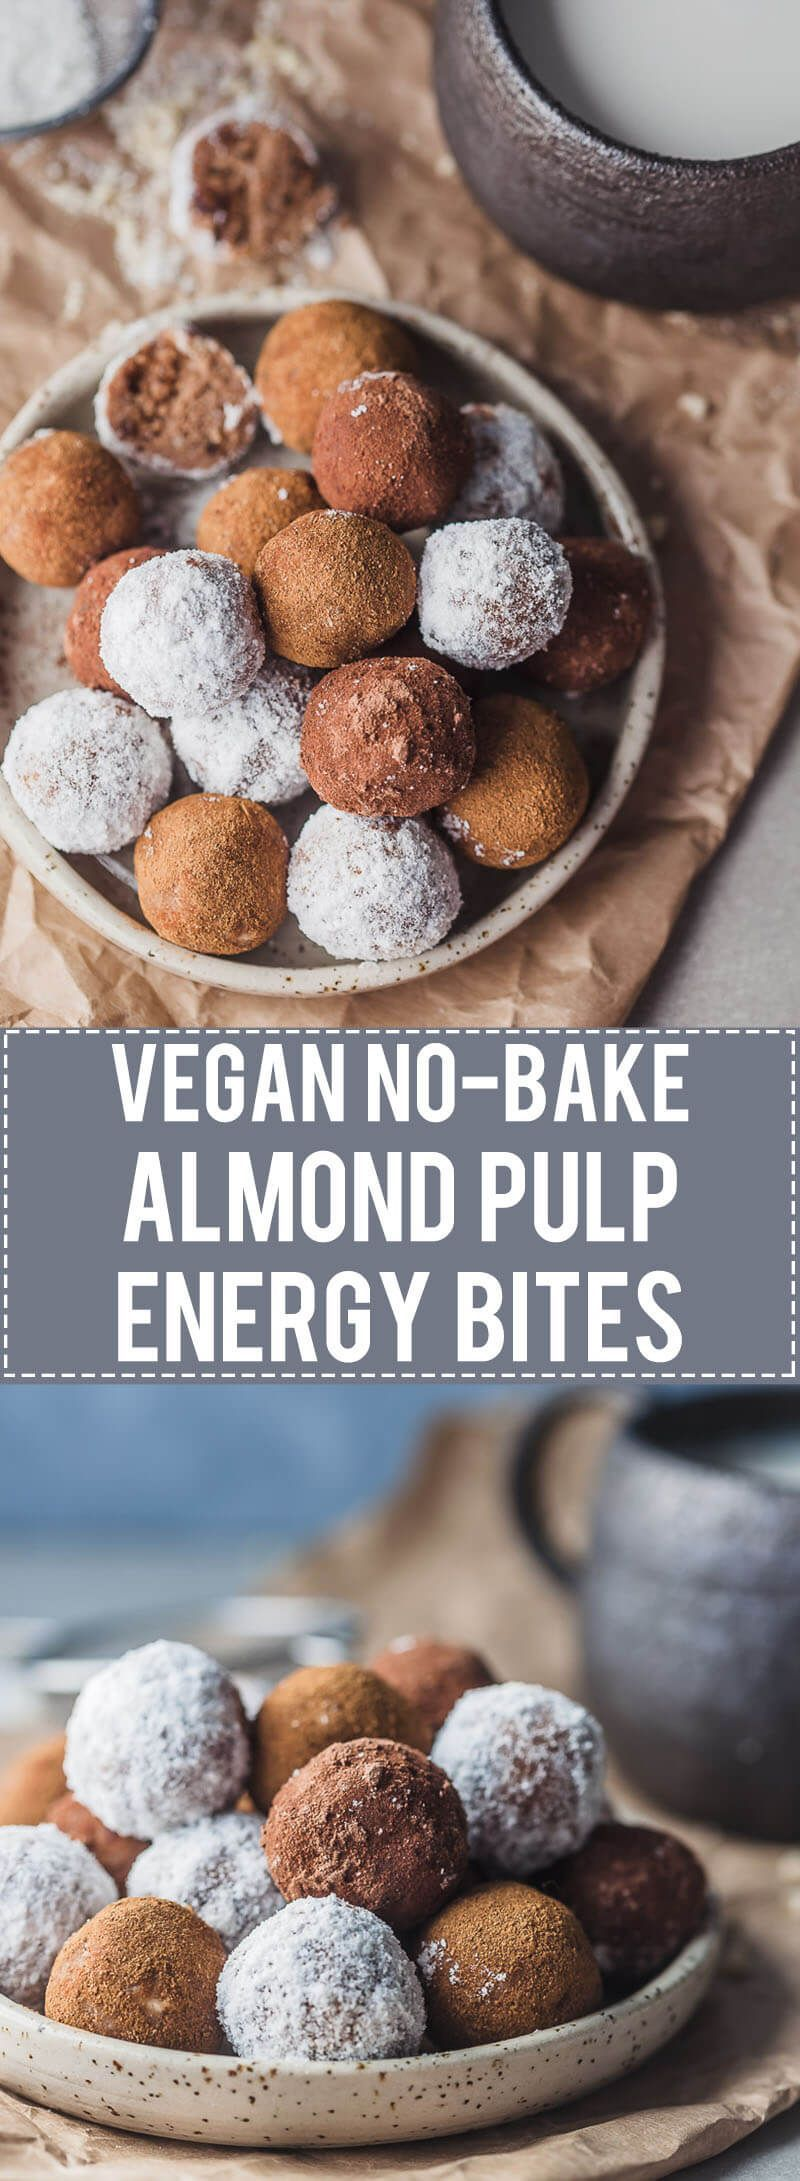 No-bake Almond Pulp Energy Bites are just perfect for using up leftover almonds from almond milk. Vegan & Gluten-Free! Almond Pulp Energy Bites are just perfect for using up leftover almonds from almond milk. Vegan & Gluten-Free!